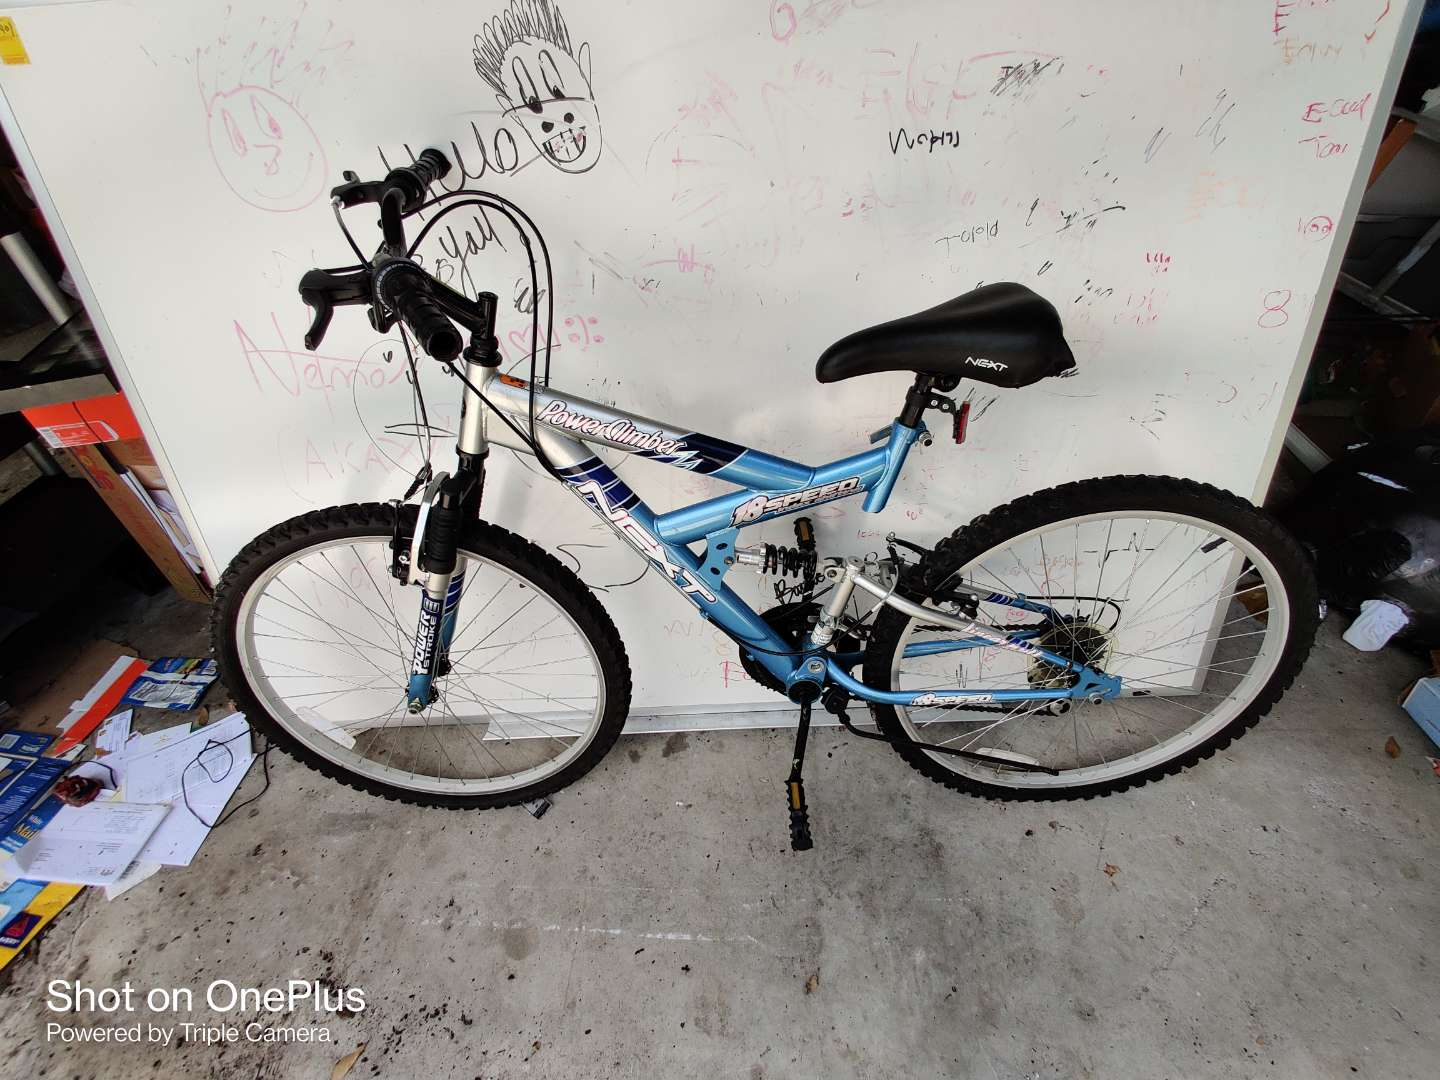 405 power climber 18 speed bicycle like new